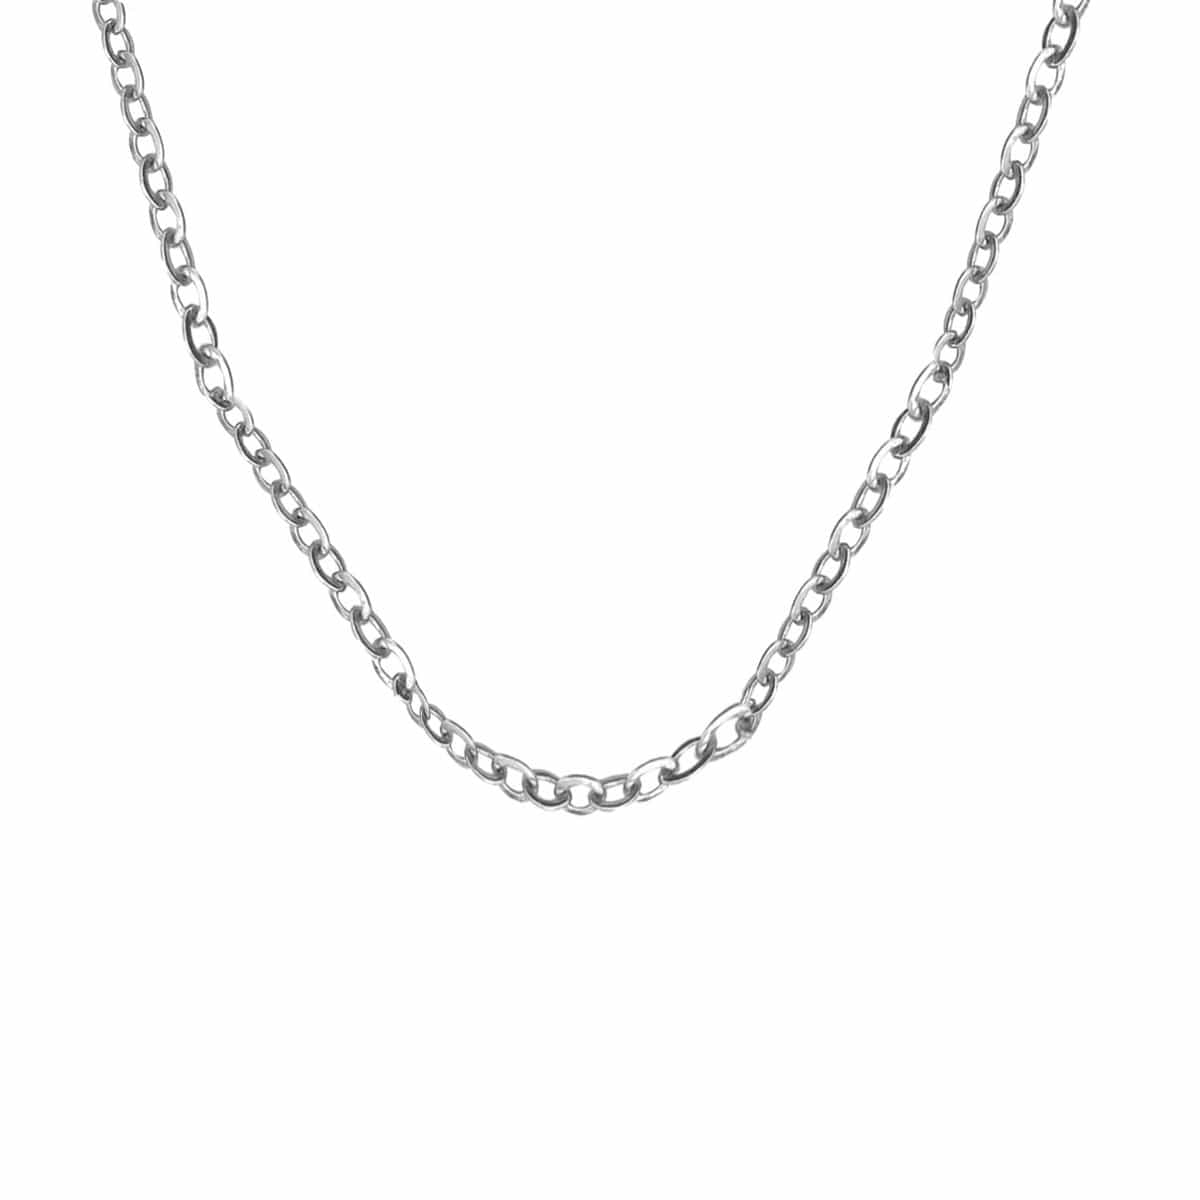 Silver Stainless Steel Polished 2mm Round Cable Chain